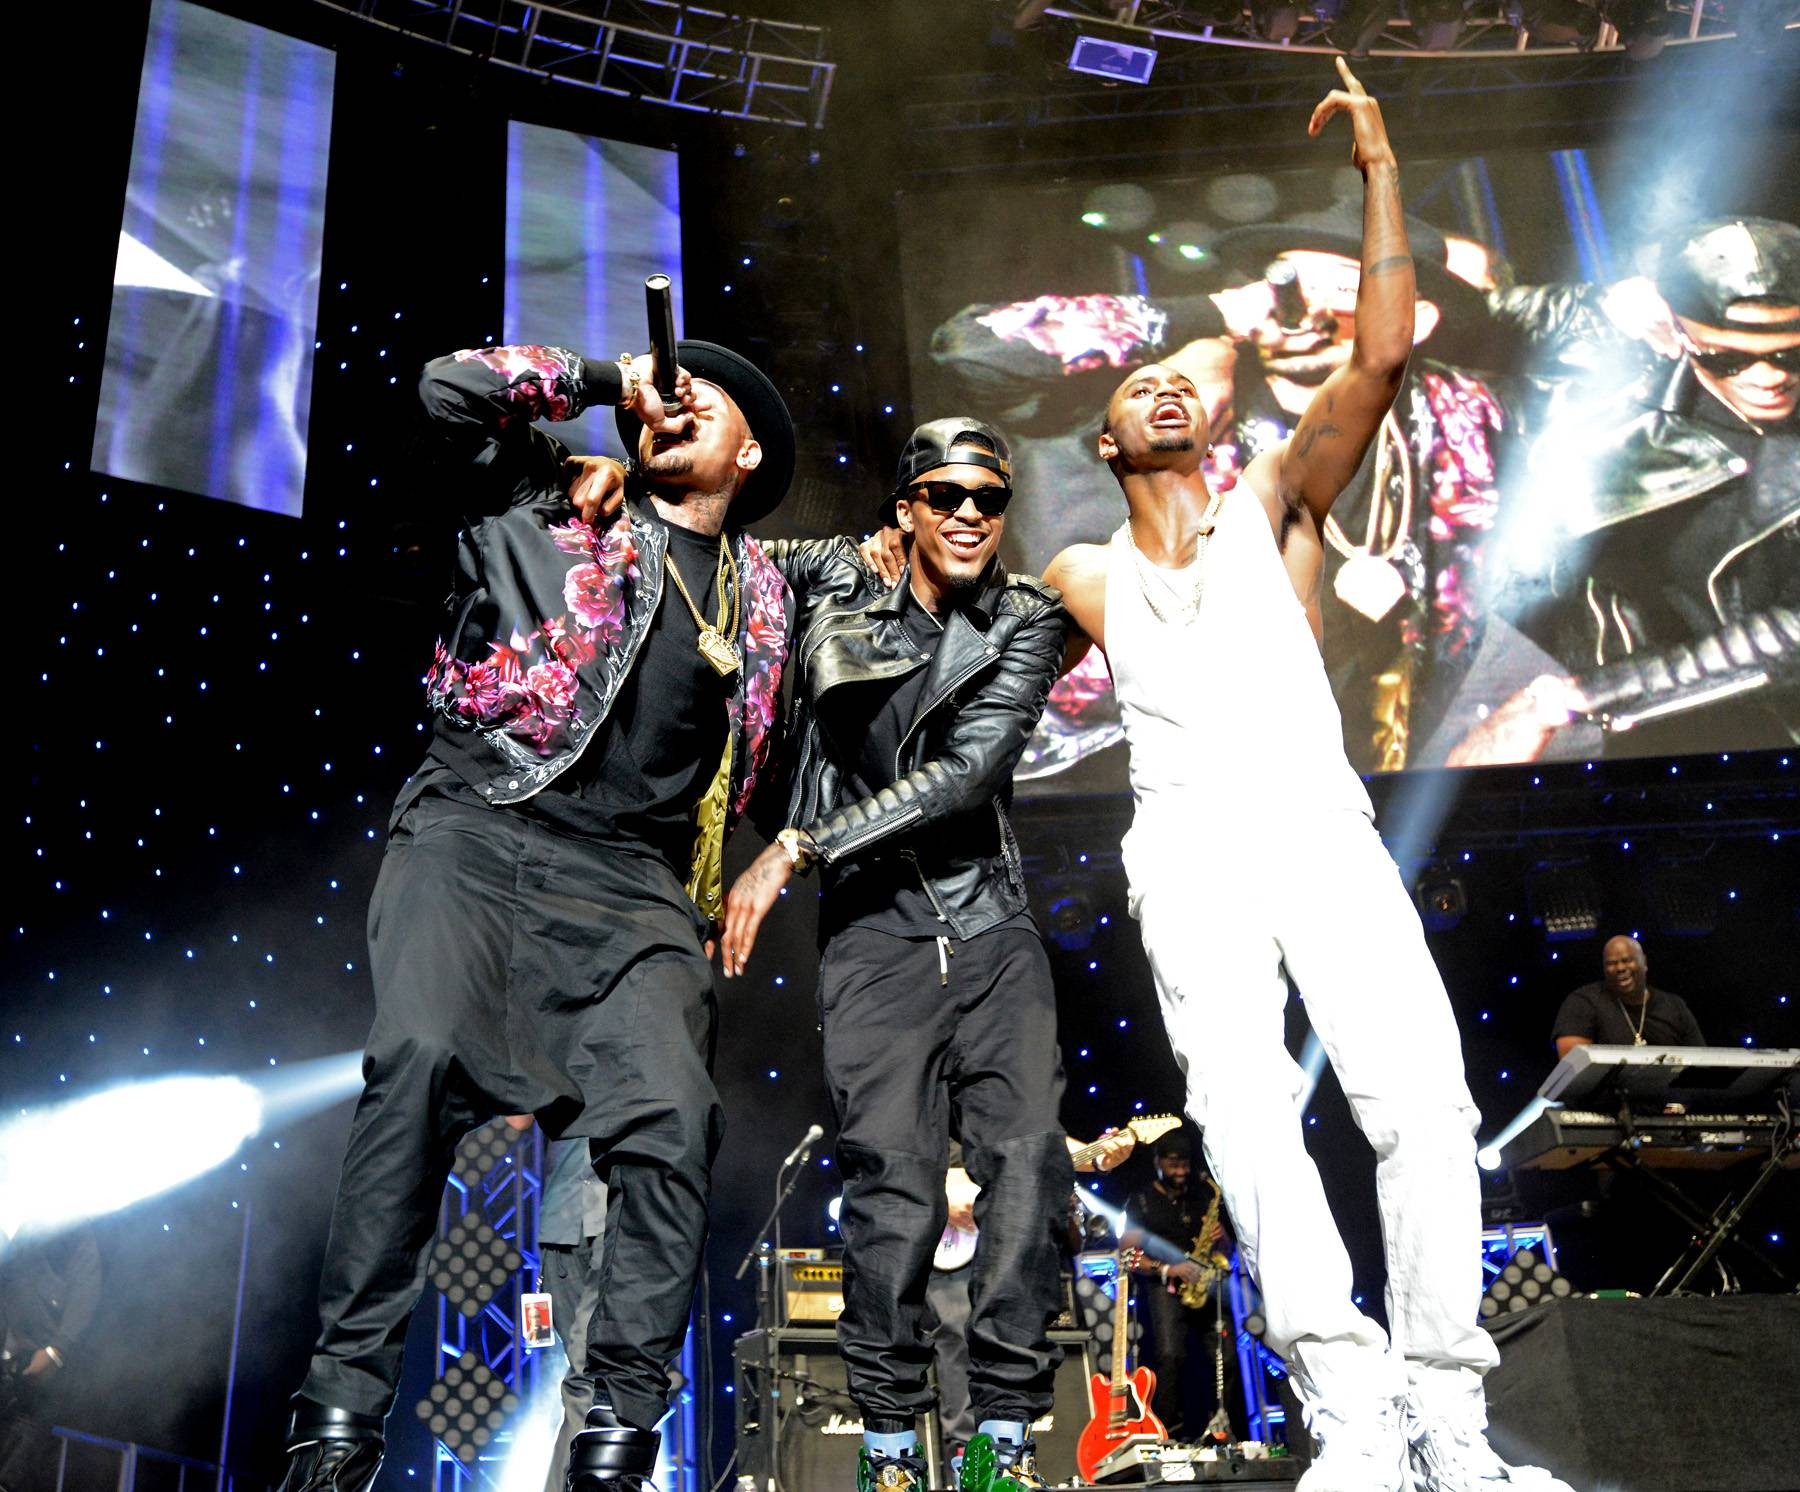 R&B Brotherhood - They brought the house down at the 2014 BET Awards earlier this year, but the fun didn't stop there. Chris Brown, August Alsina and Trey Songz hit the stage together for a second time this year at the 2014 BET Experience, making every young girl's dream come true simultaneously.(Photo: Earl Gibson/BET/Getty Images for BET)